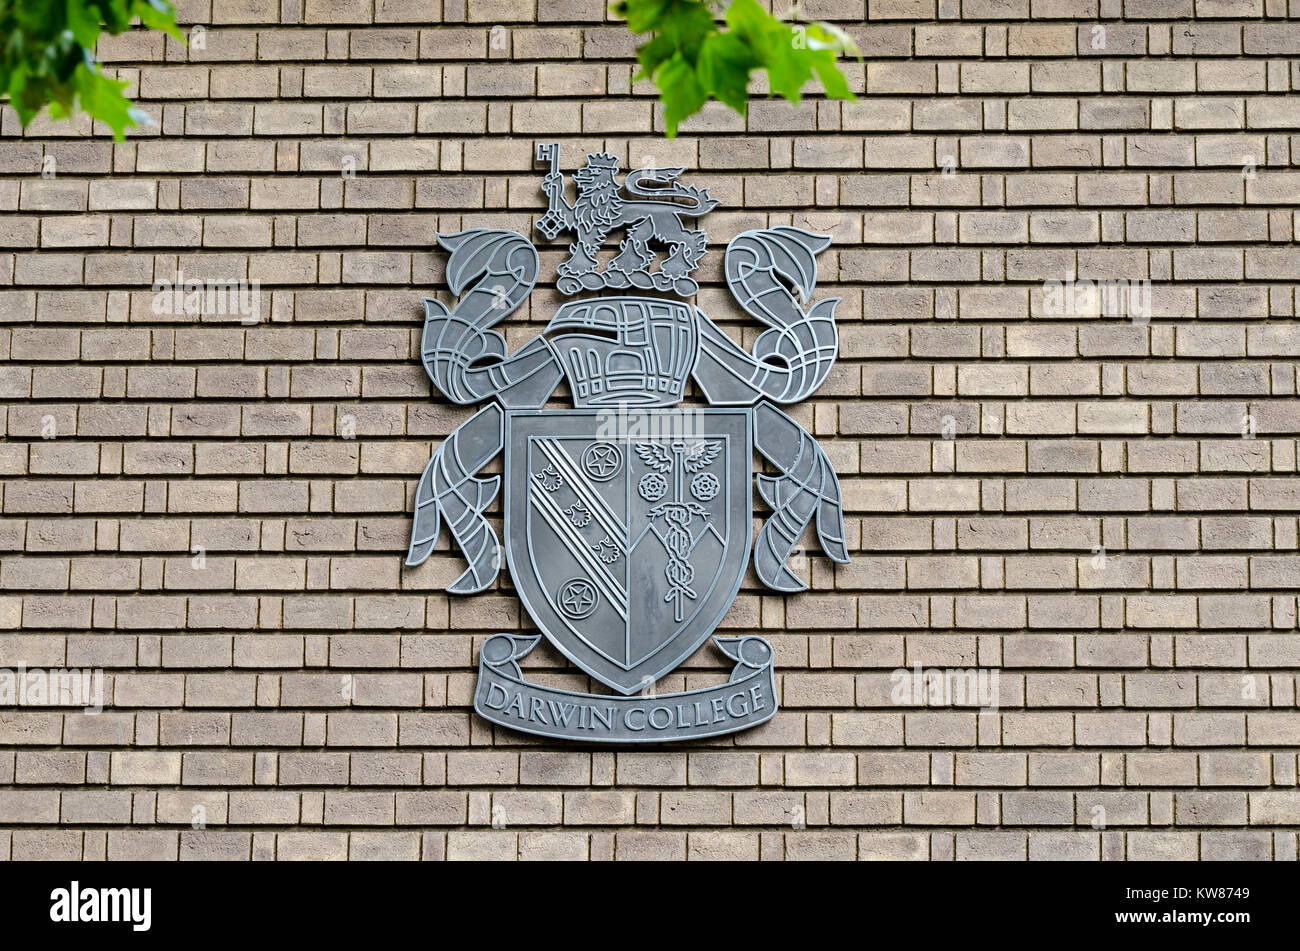 Darwin College, University of Cambridge, crest, coat of arms on the side of a building, Cambridge, UK - Stock Image